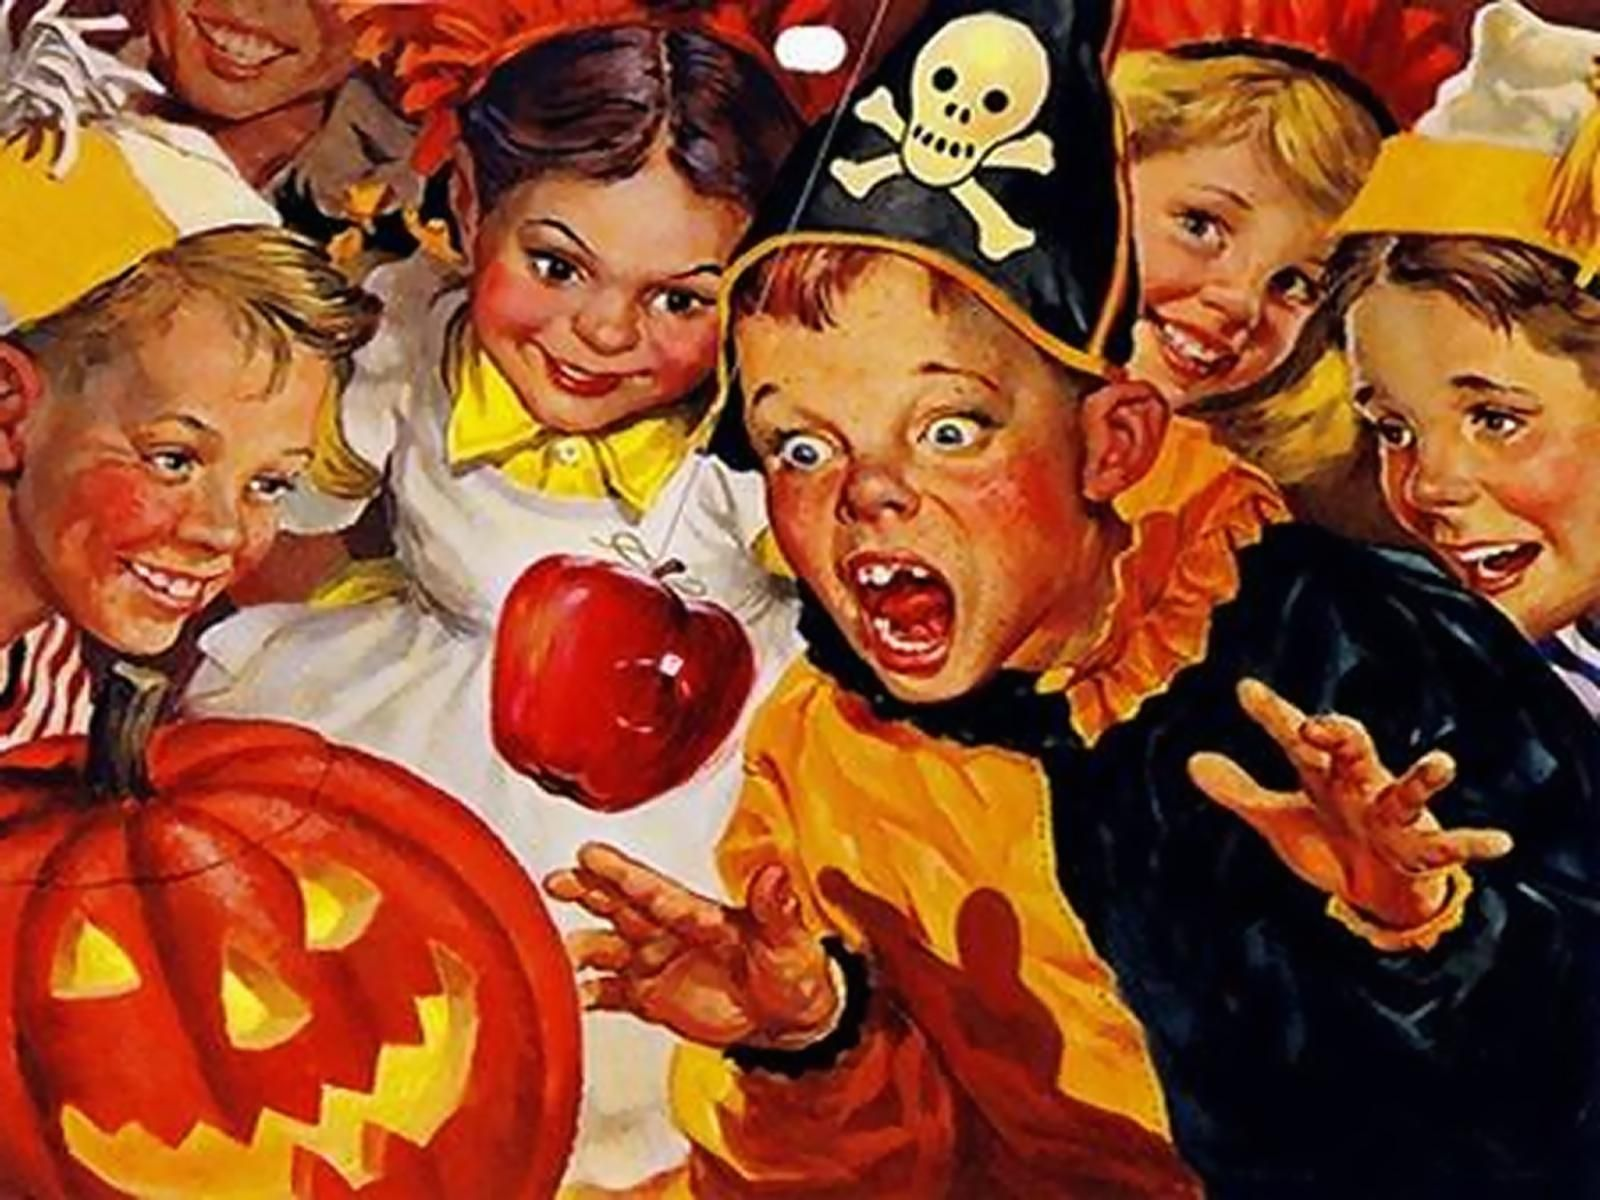 Vintage Halloween Wallpapers Desktop Wallpaper 1600 1200 Vintage Halloween Wallpapers 50 Wallpapers Adorable Wallpapers